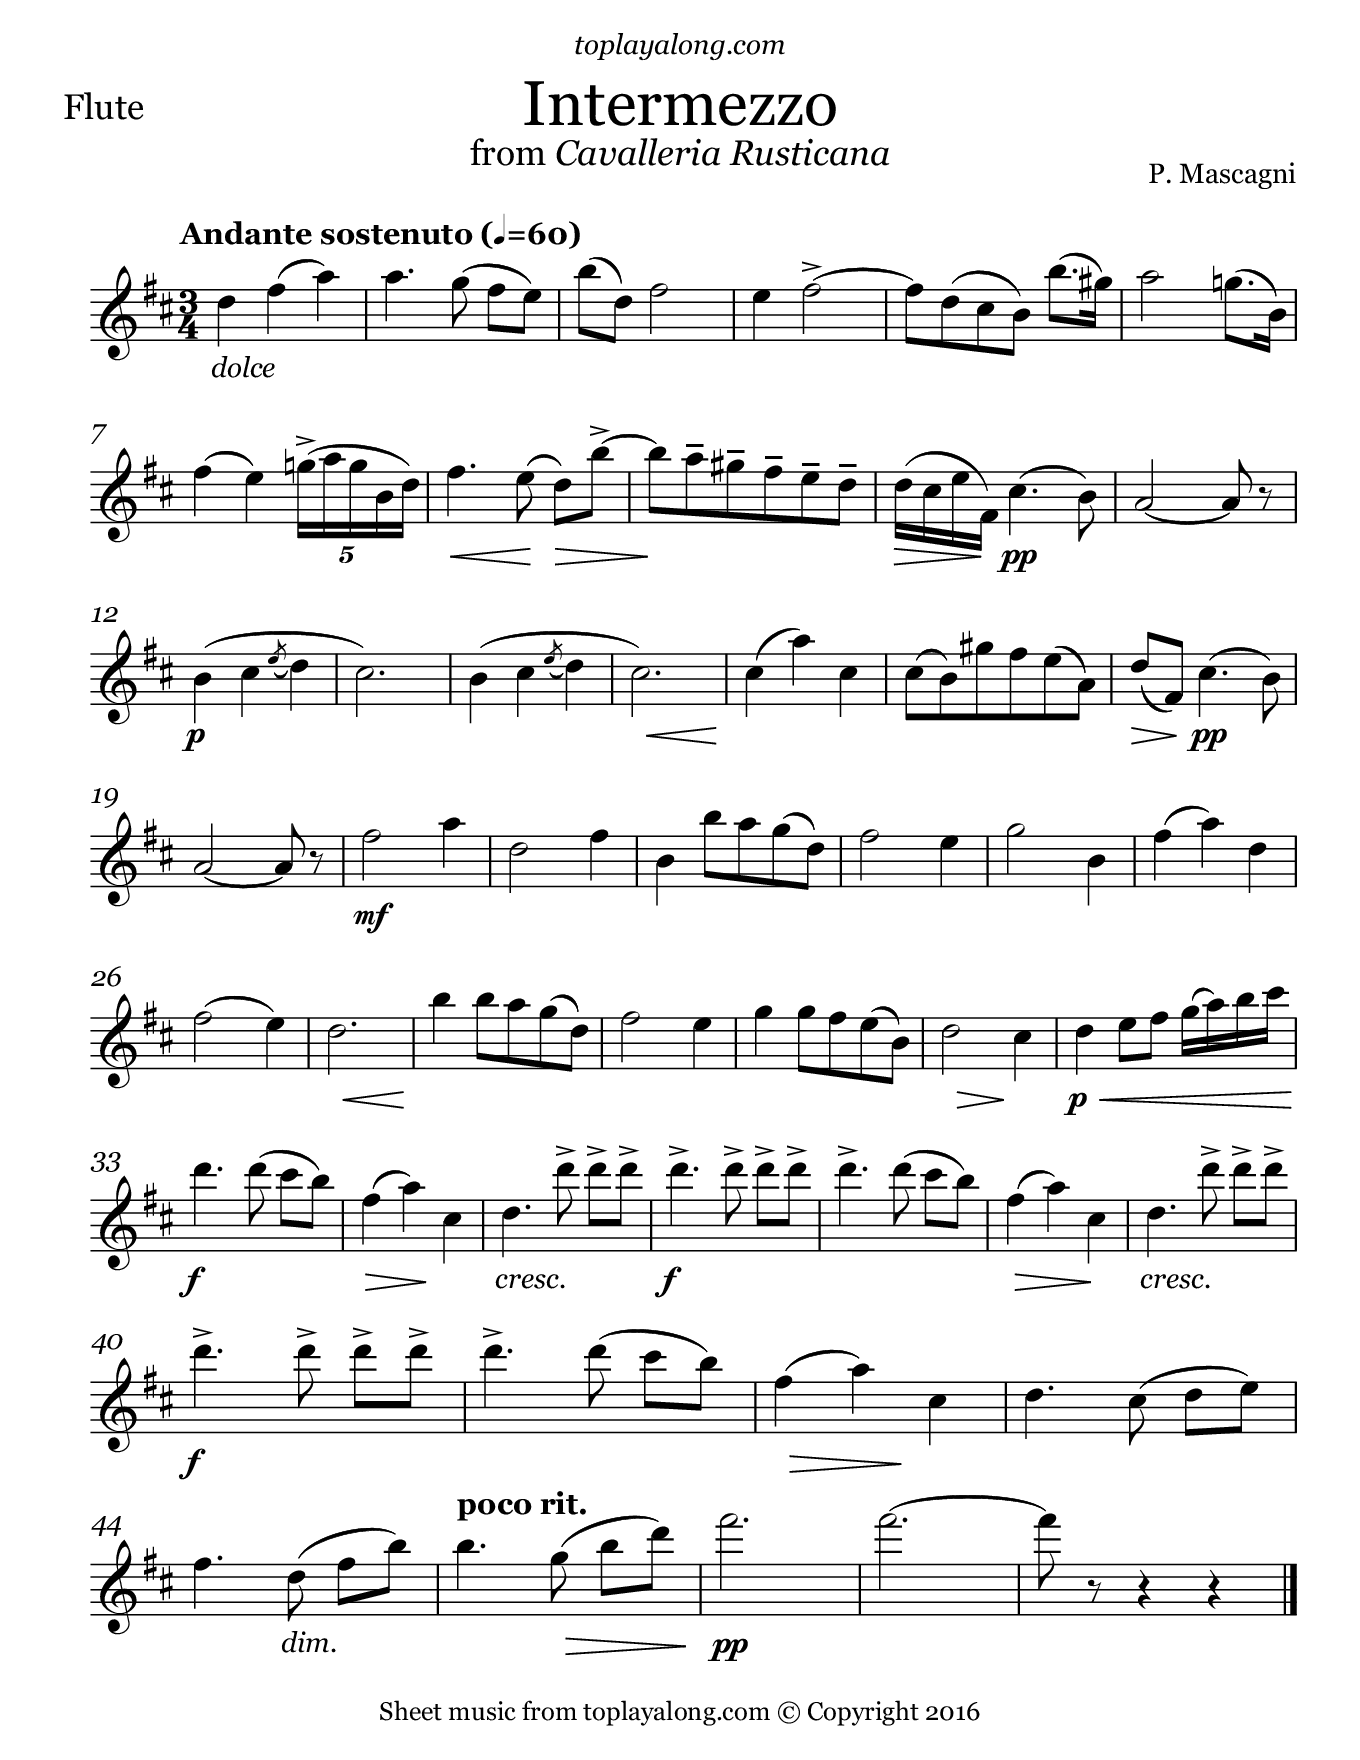 Intermezzo from Cavalleria Rusticana by Mascagni. Sheet music for Flute, page 1.